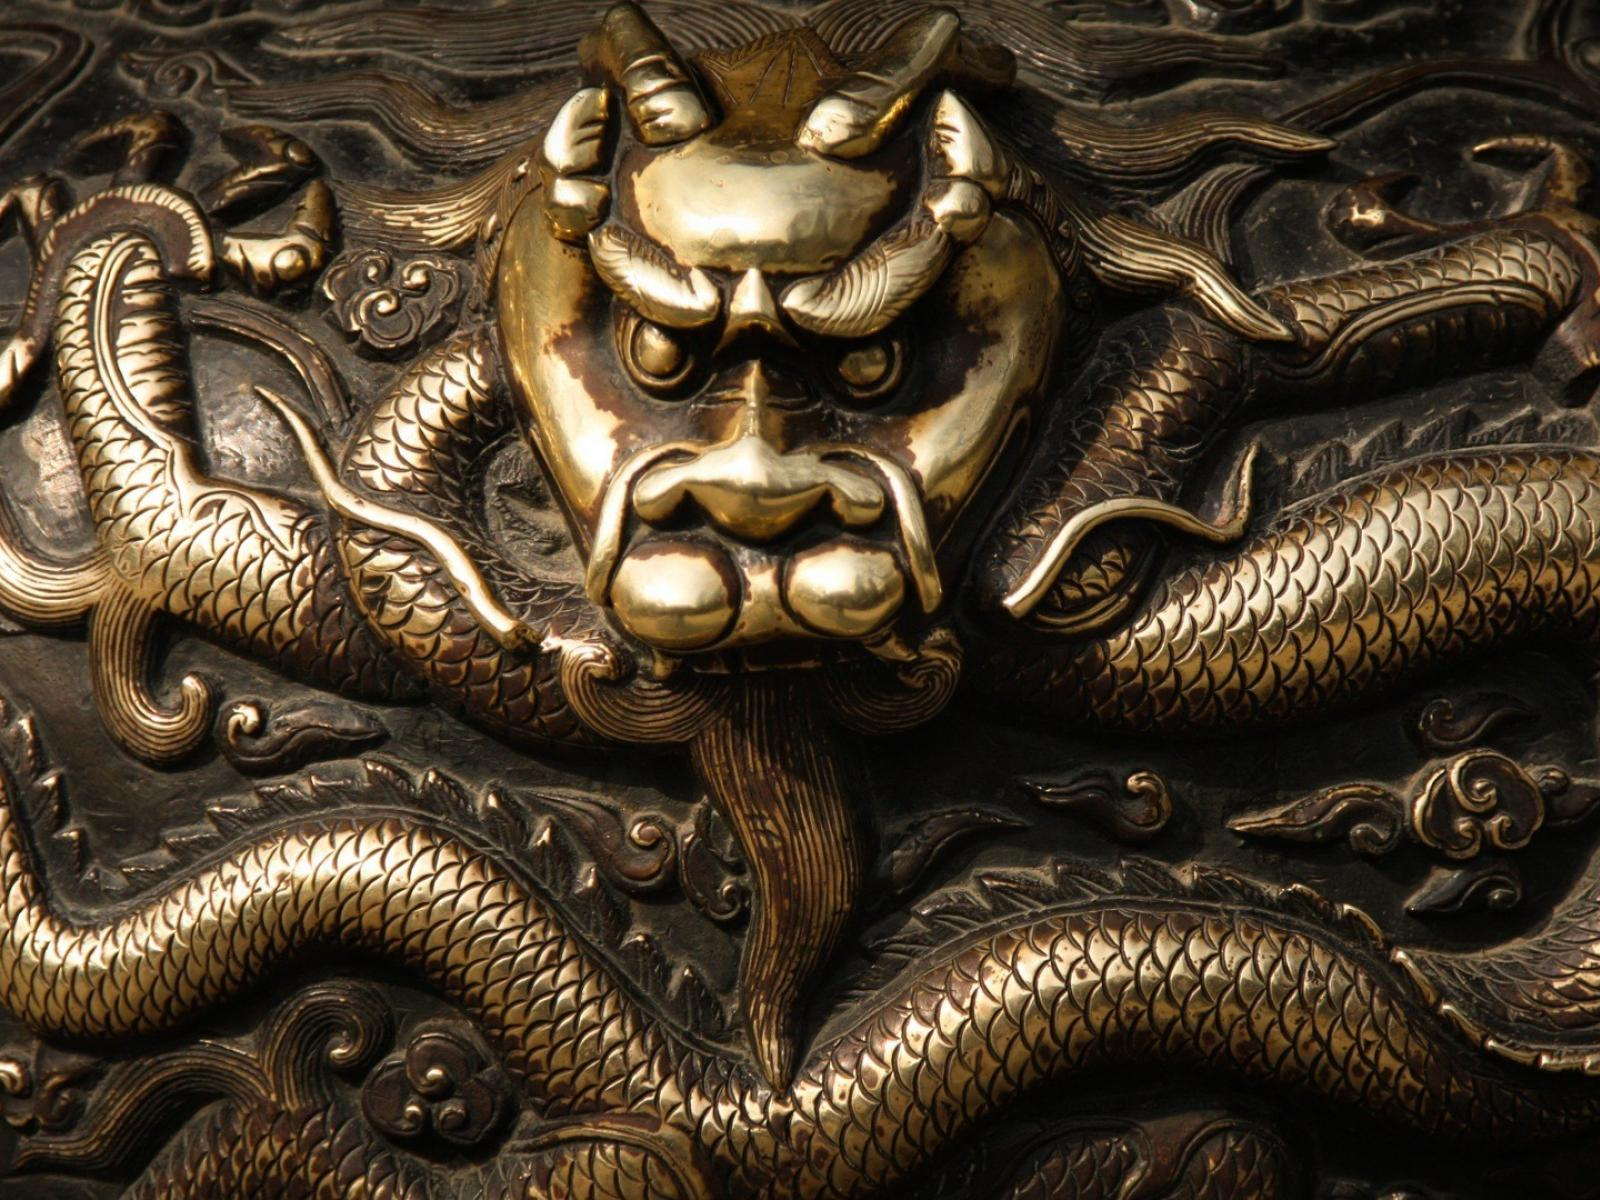 Dragons metallic oriental bronze asian art wallpaper 79777 1600x1200